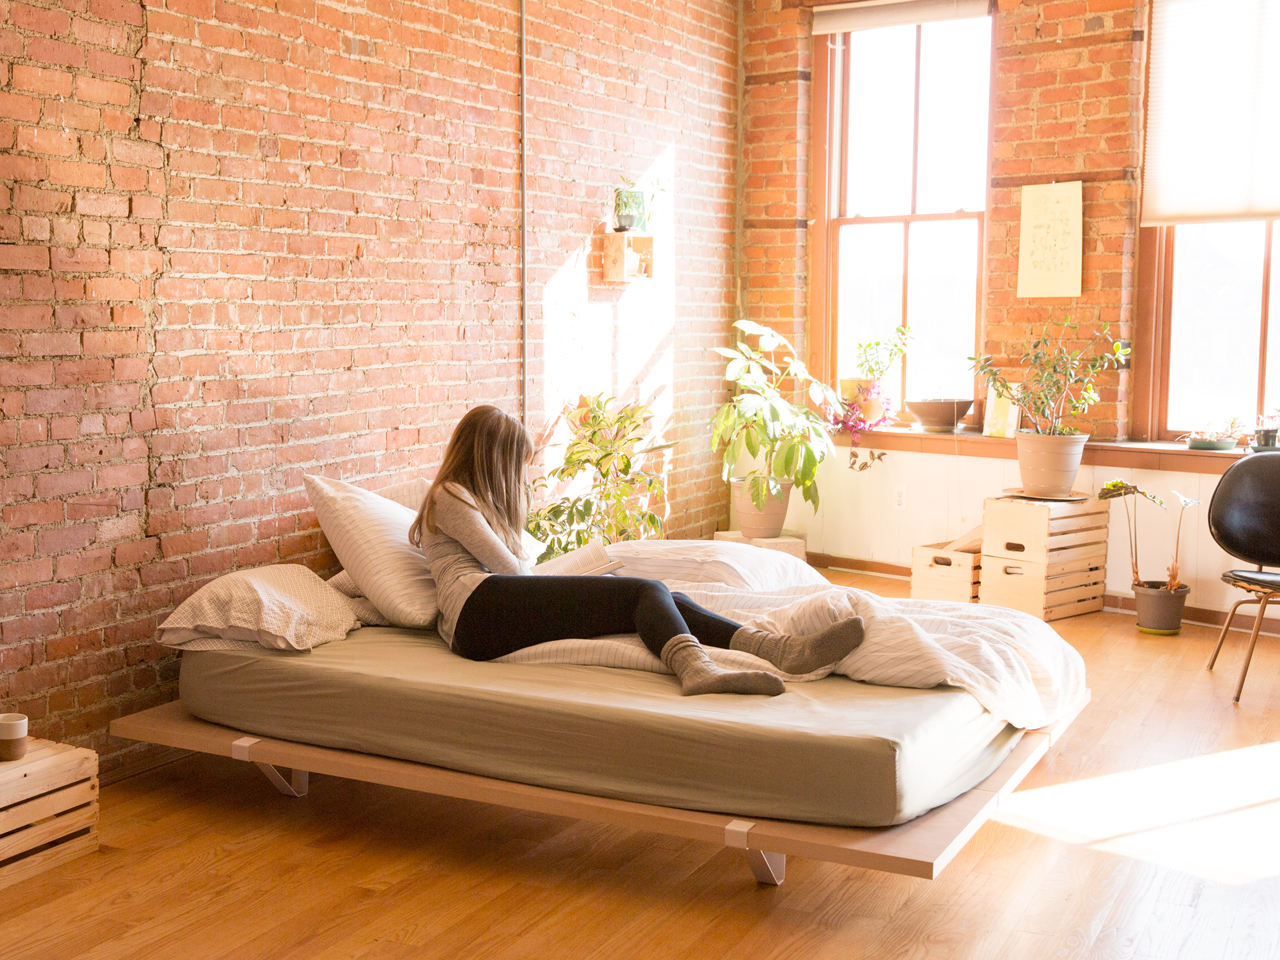 Minimal Bed A Minimal Platform Bed For City Living Design Milk